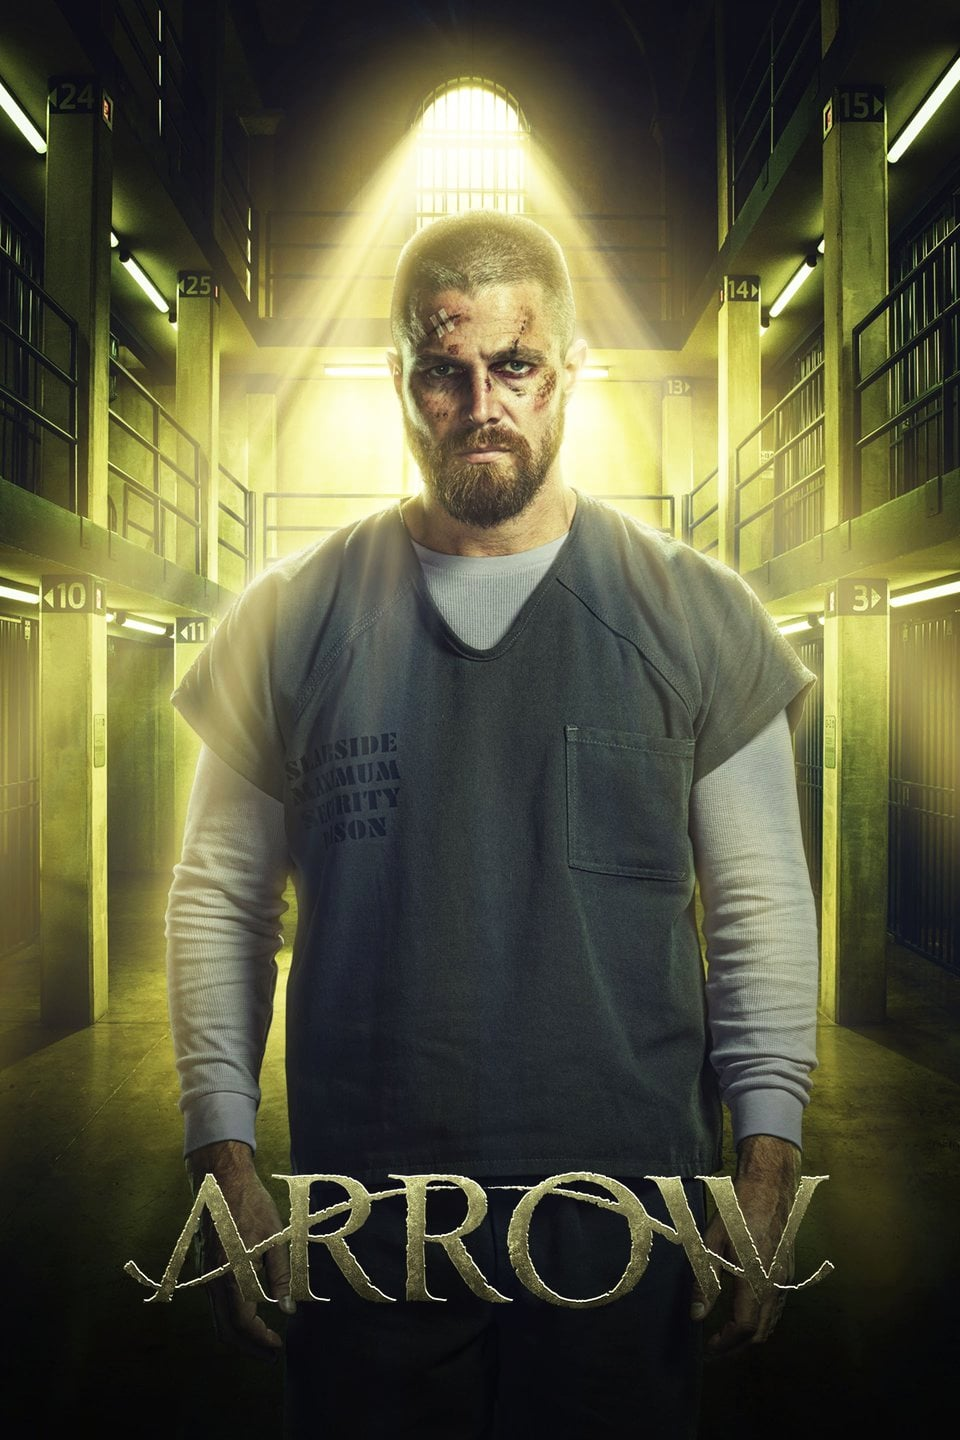 Arrow 7ª Temporada (2018) Torrent - WEB-DL 720p e 1080p Dublado / Dual Áudio e Legendado Download